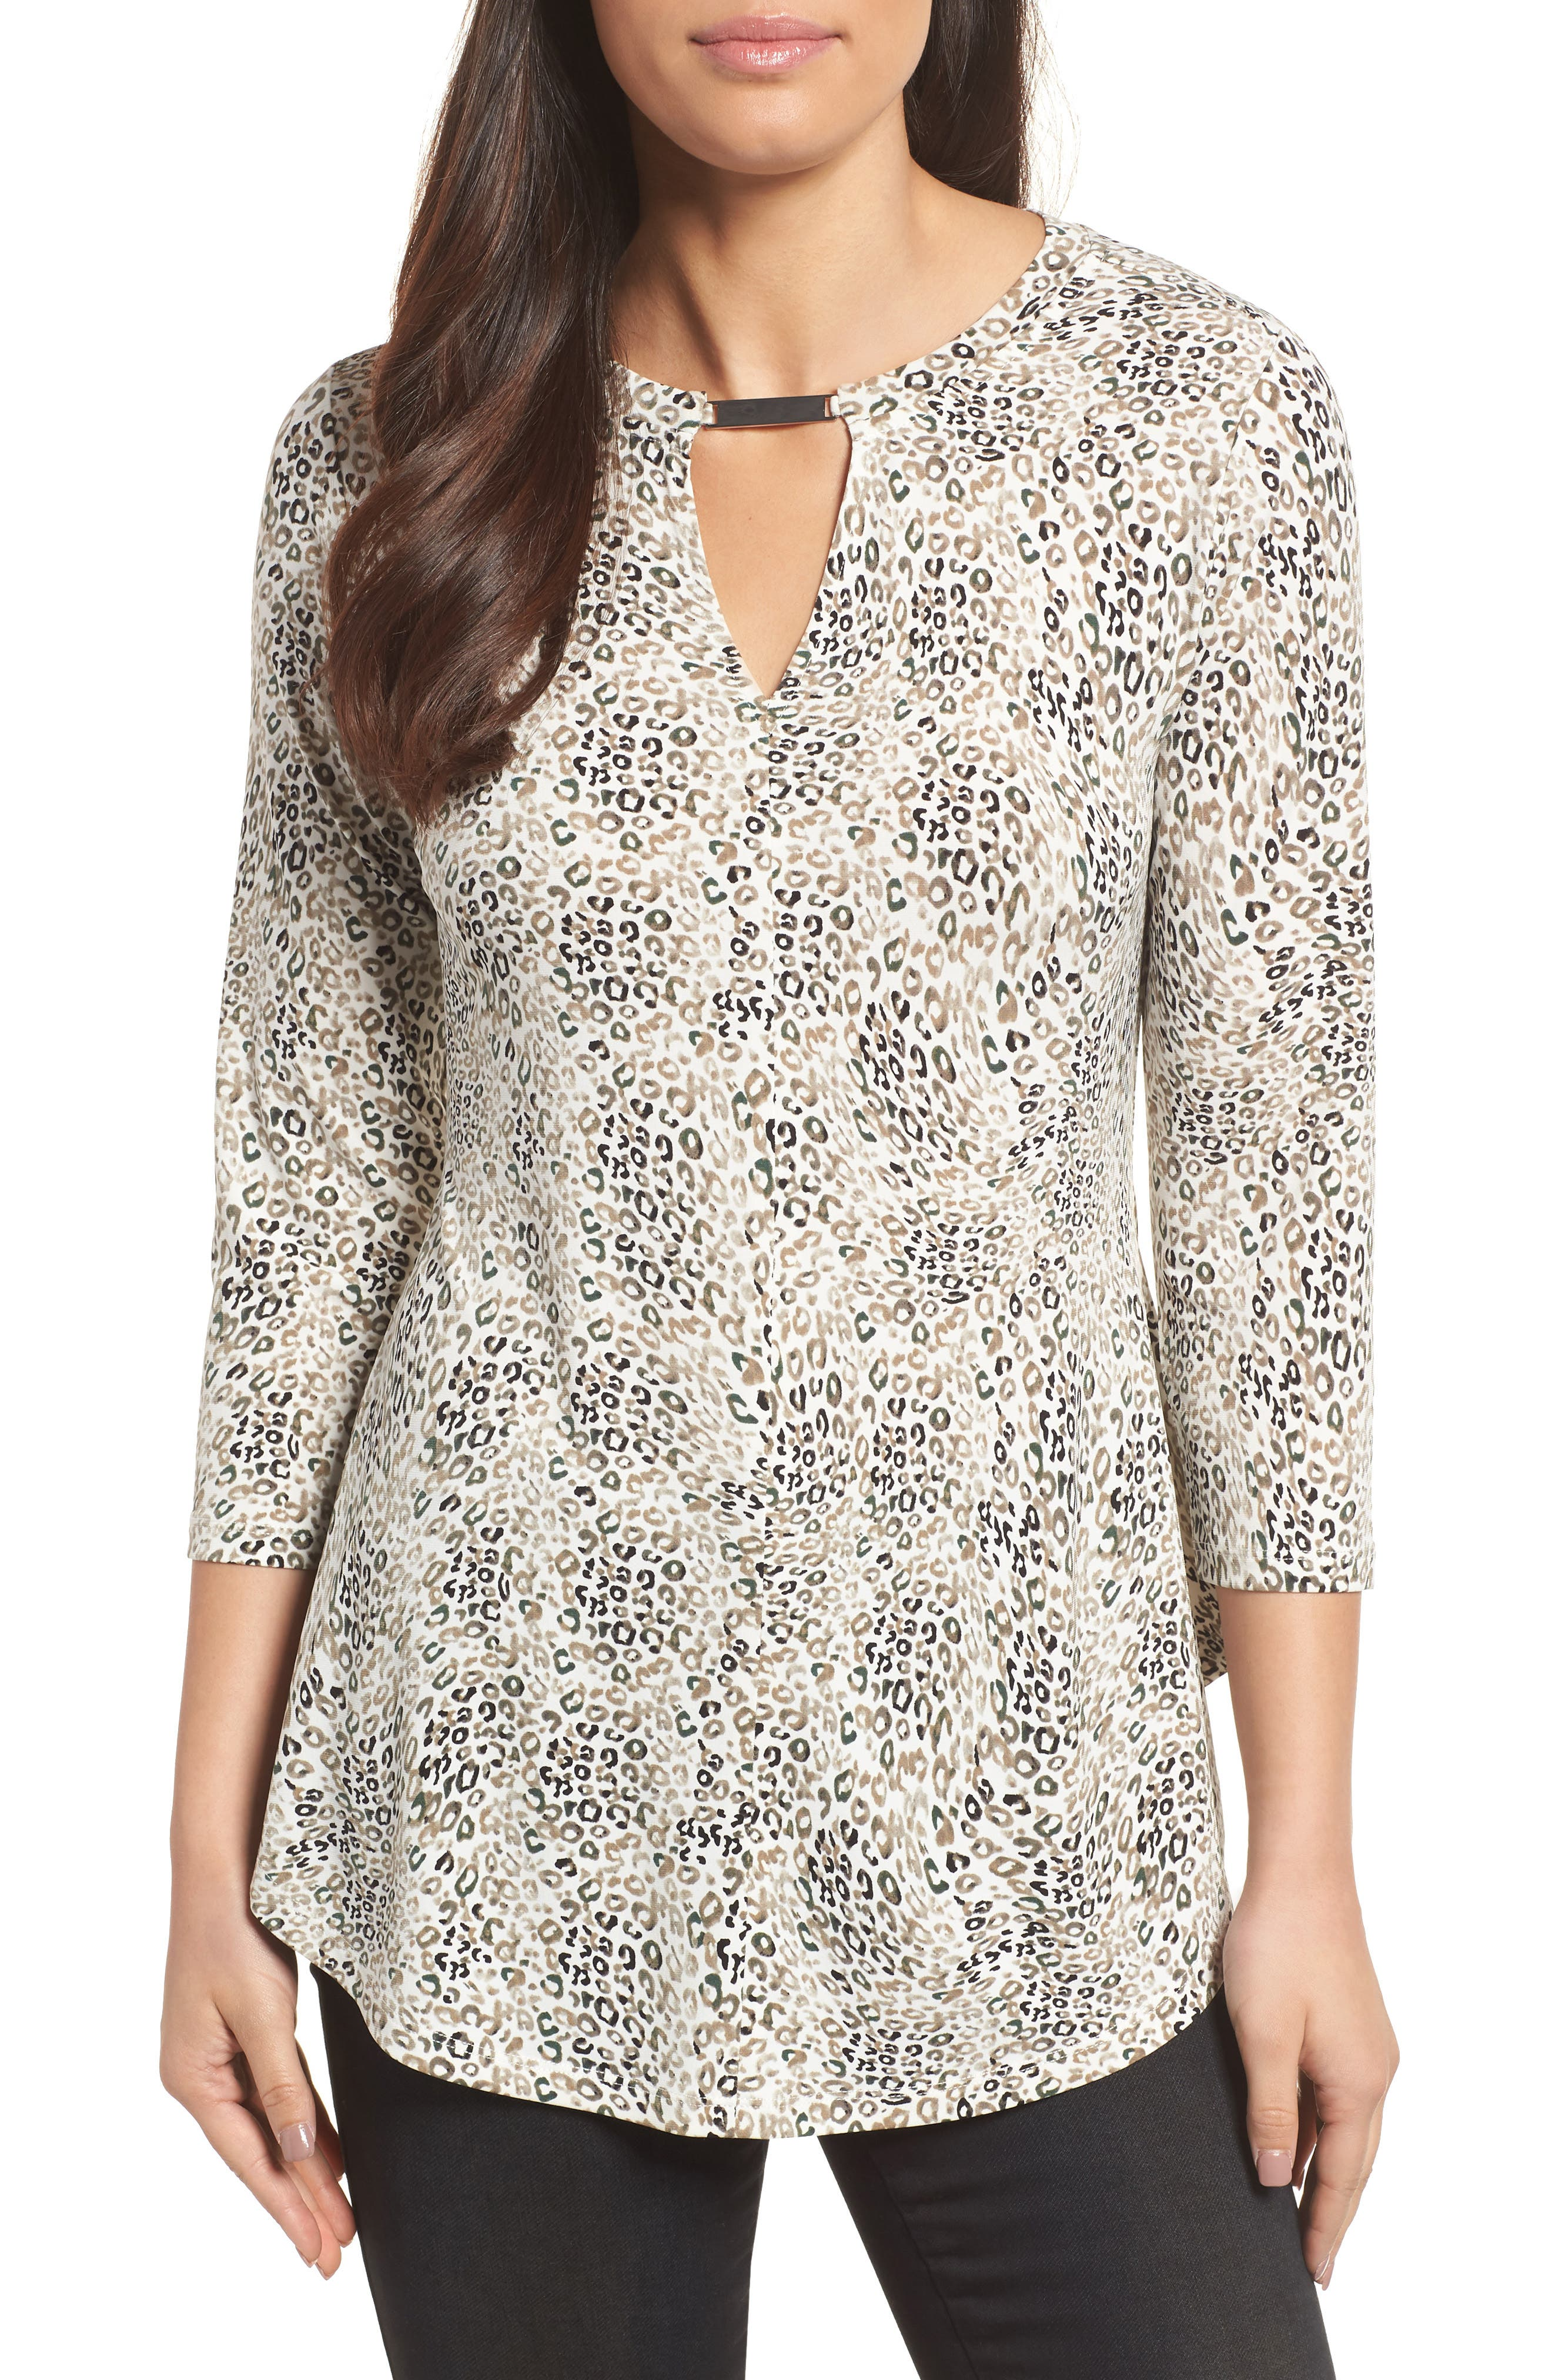 Leopard Keyhole Top,                             Main thumbnail 1, color,                             103-New Ivory